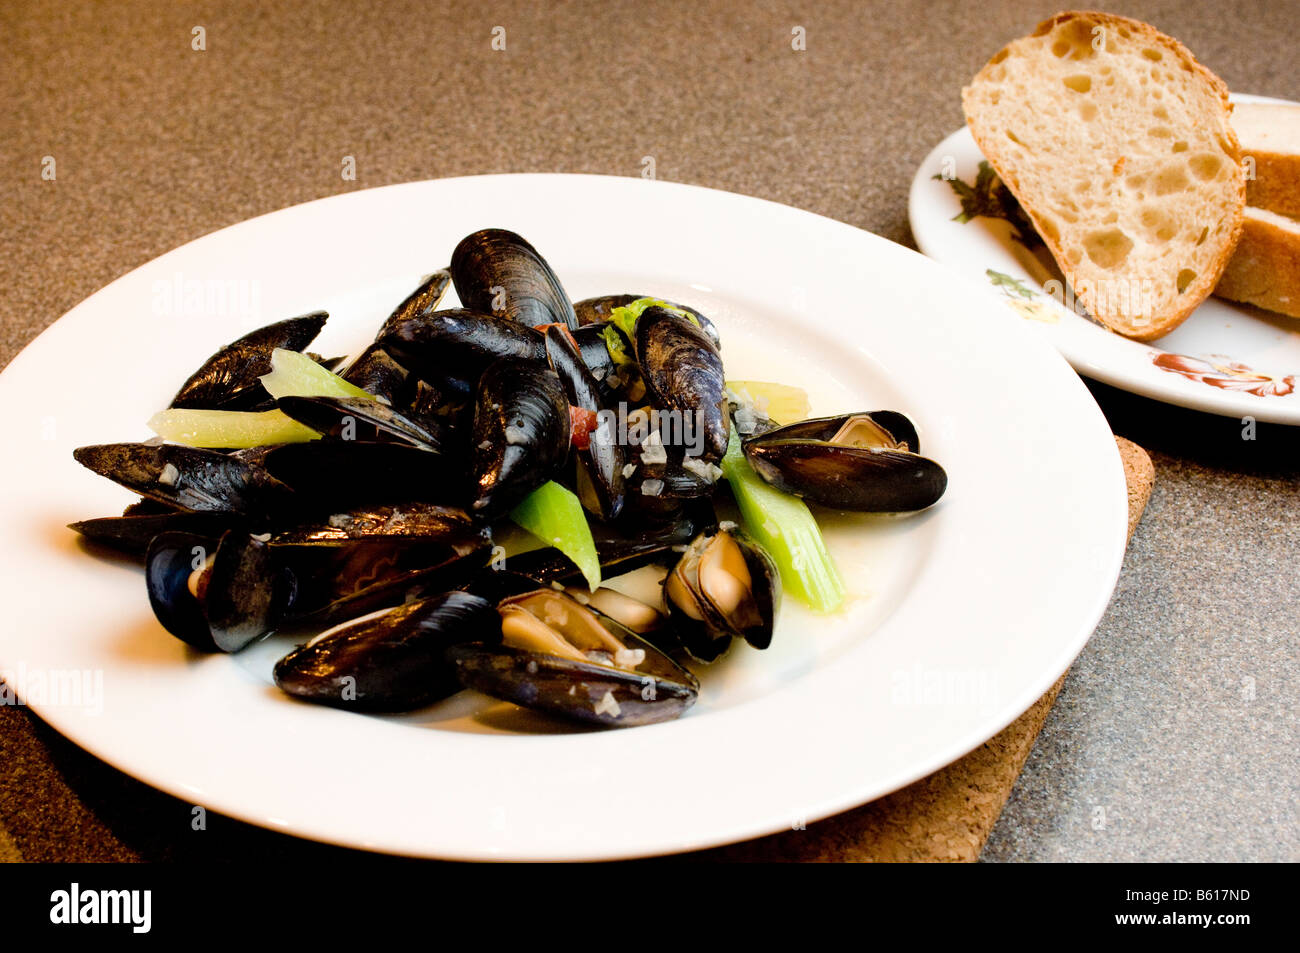 mussels a la mariniere are seen served in a generous bowl - Stock Image